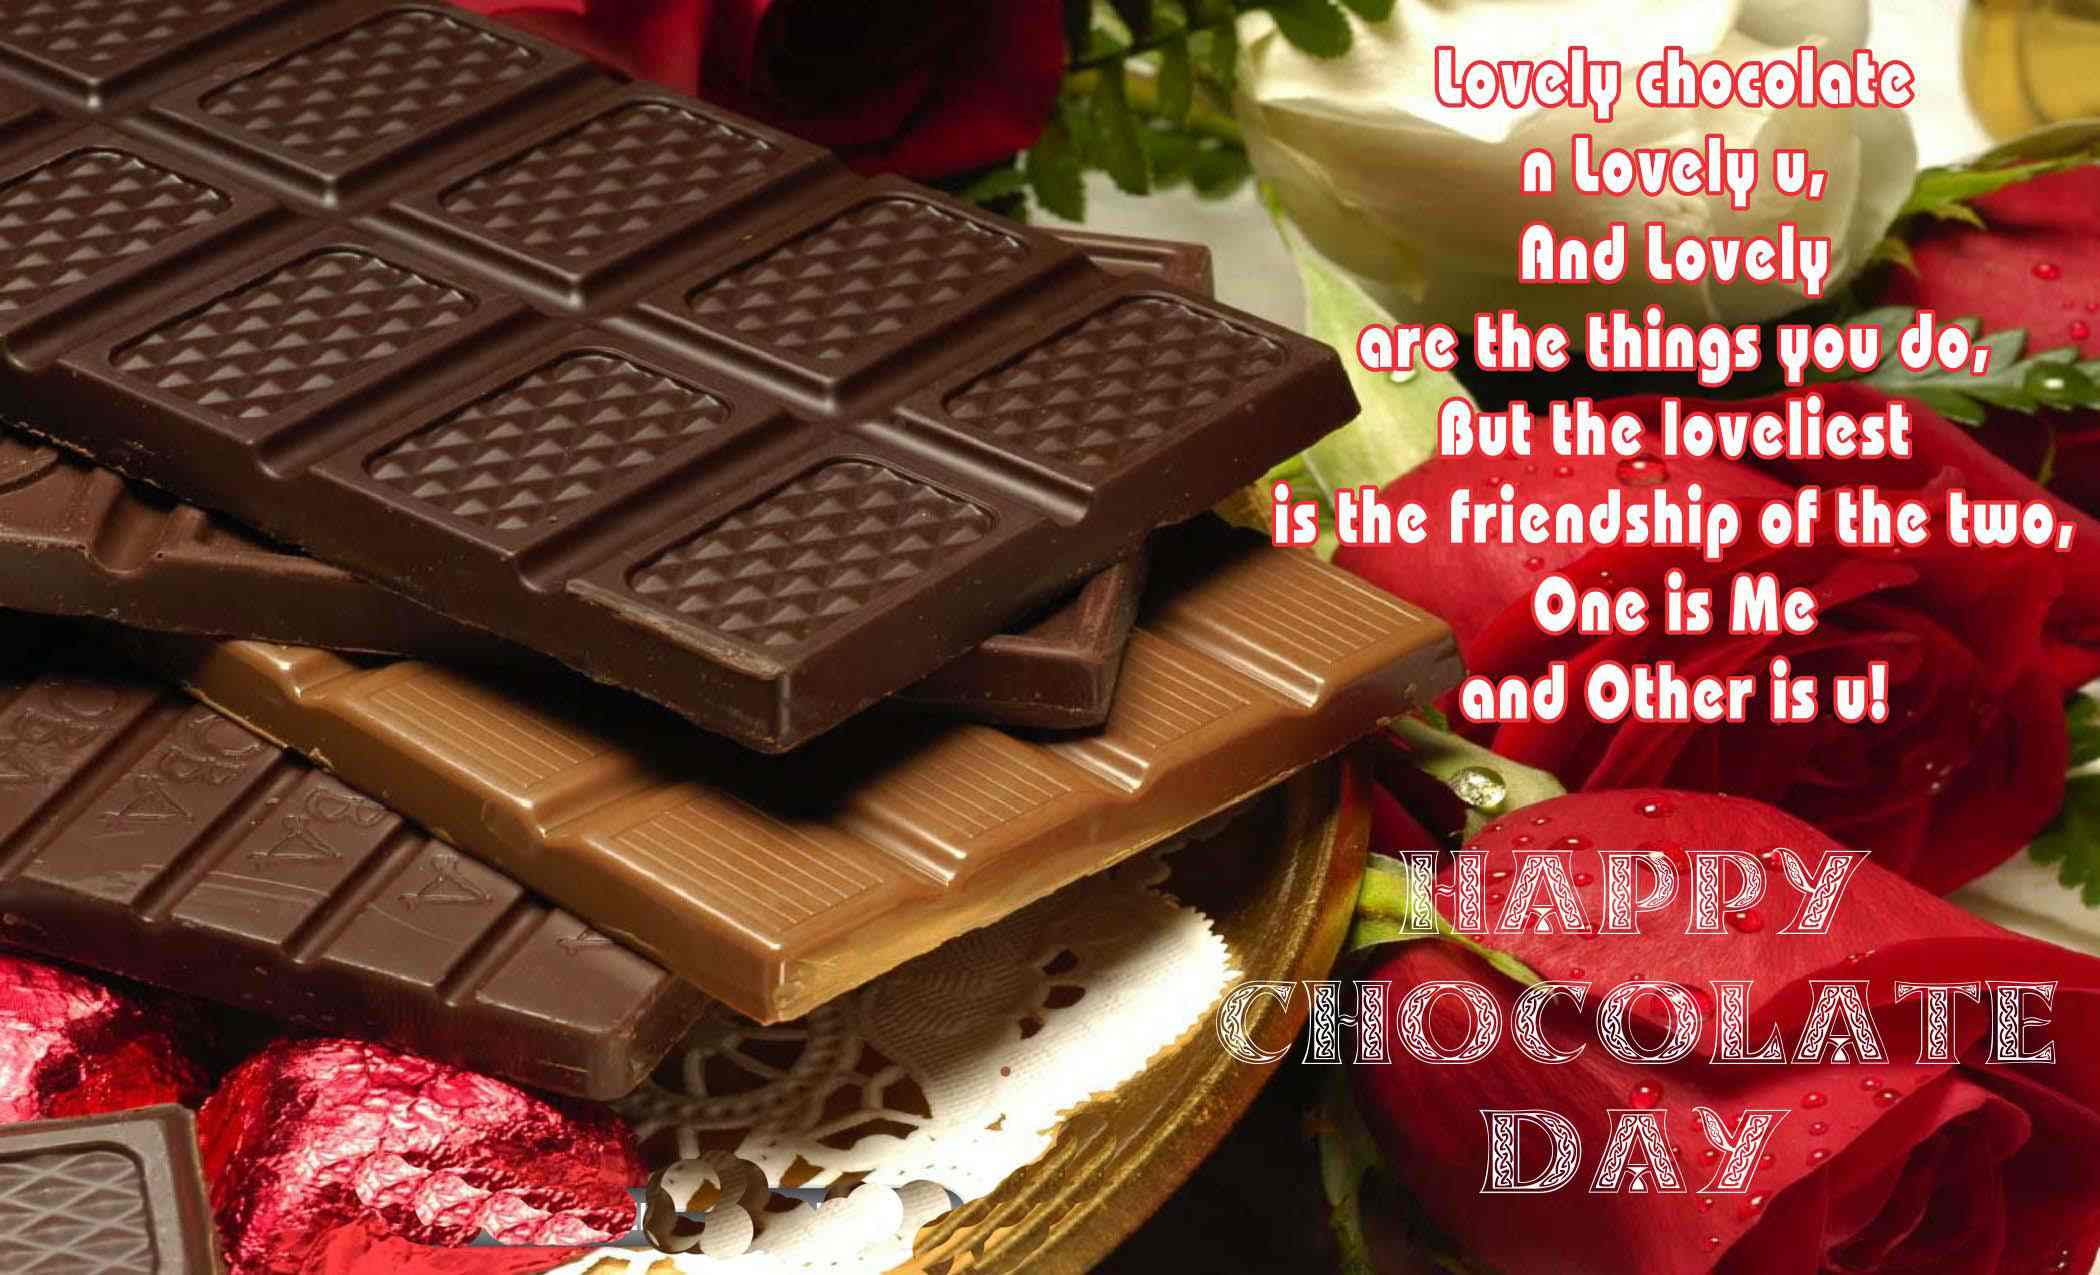 chocolate day images 2018 happy